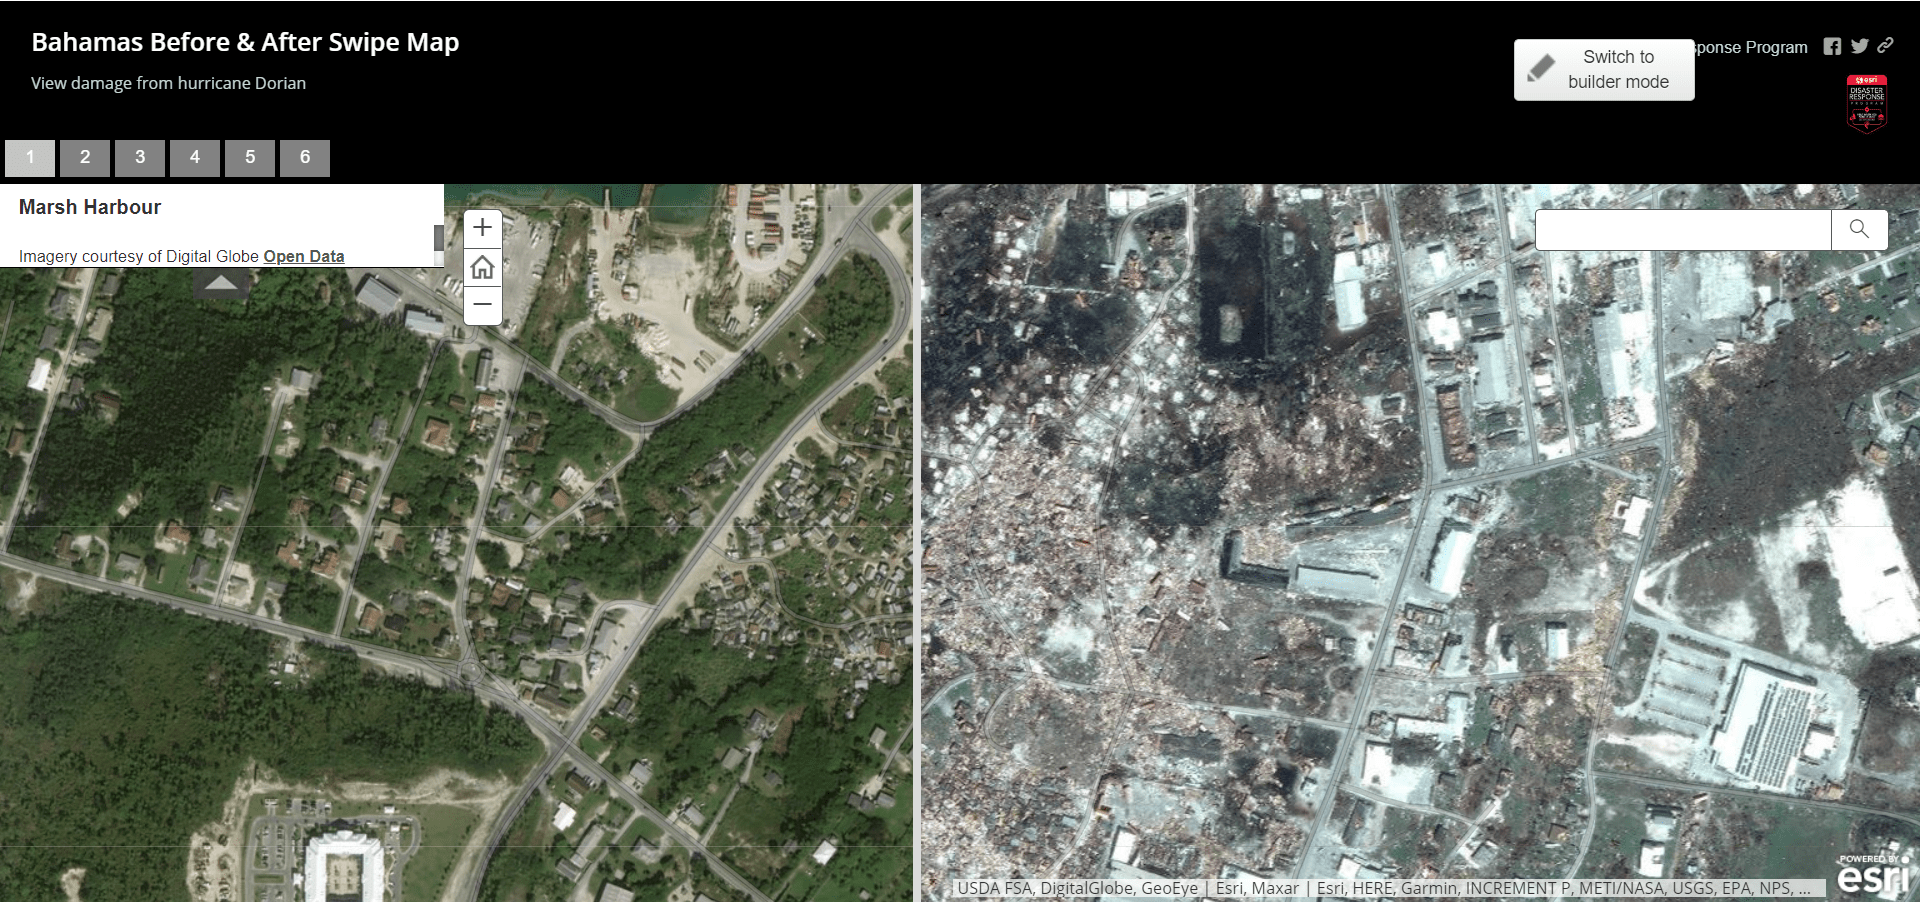 Bahamas Before & After Swipe Map